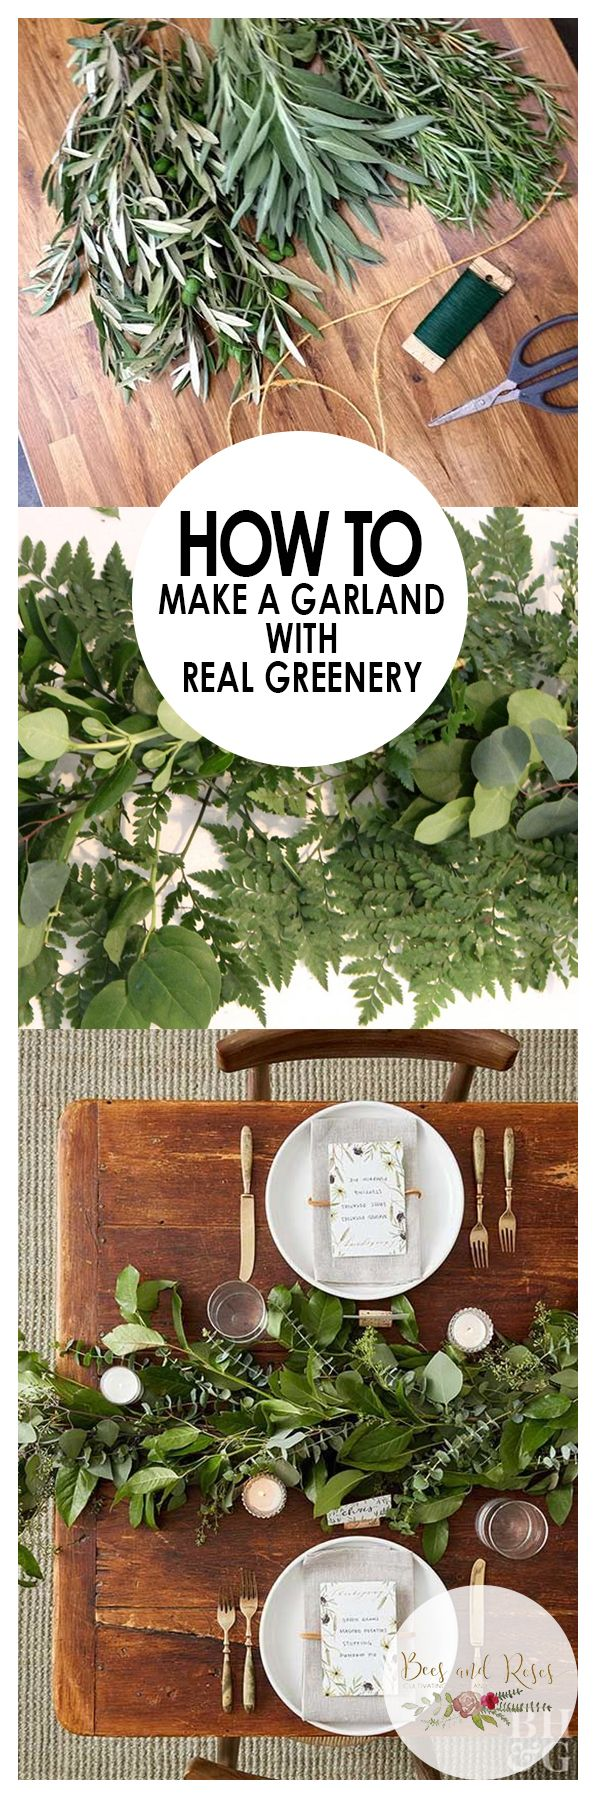 How to Make a DIY Garland With Real Greenery Garland